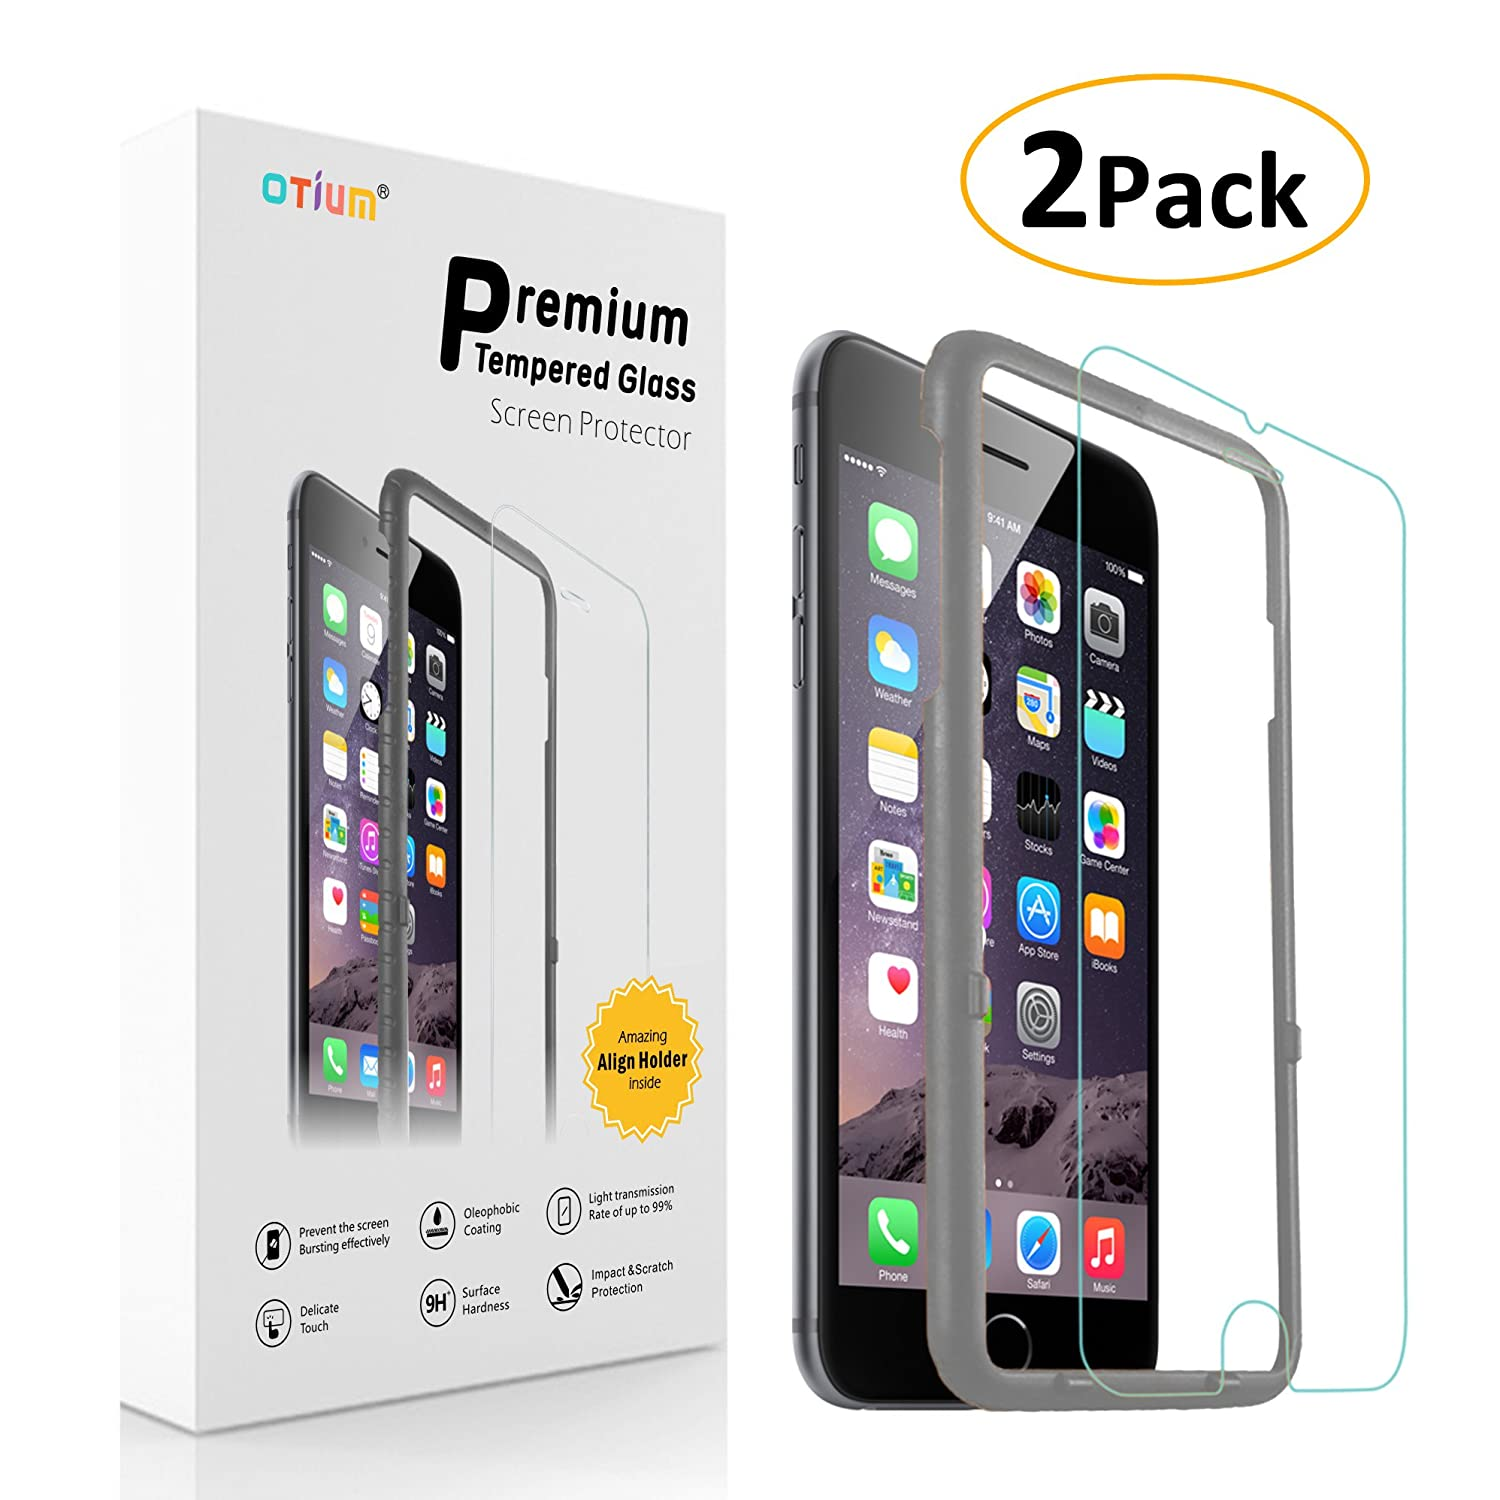 iPhone 6 6s Plus Screen Protector (2-Pack) Otium Tempered Glass Screen Protector with Applicator HD Oleophobic Anti Scratch Anti Fingerprint, Round Edge Ultra Clear for iPhone 6 6s Plus 5.5""